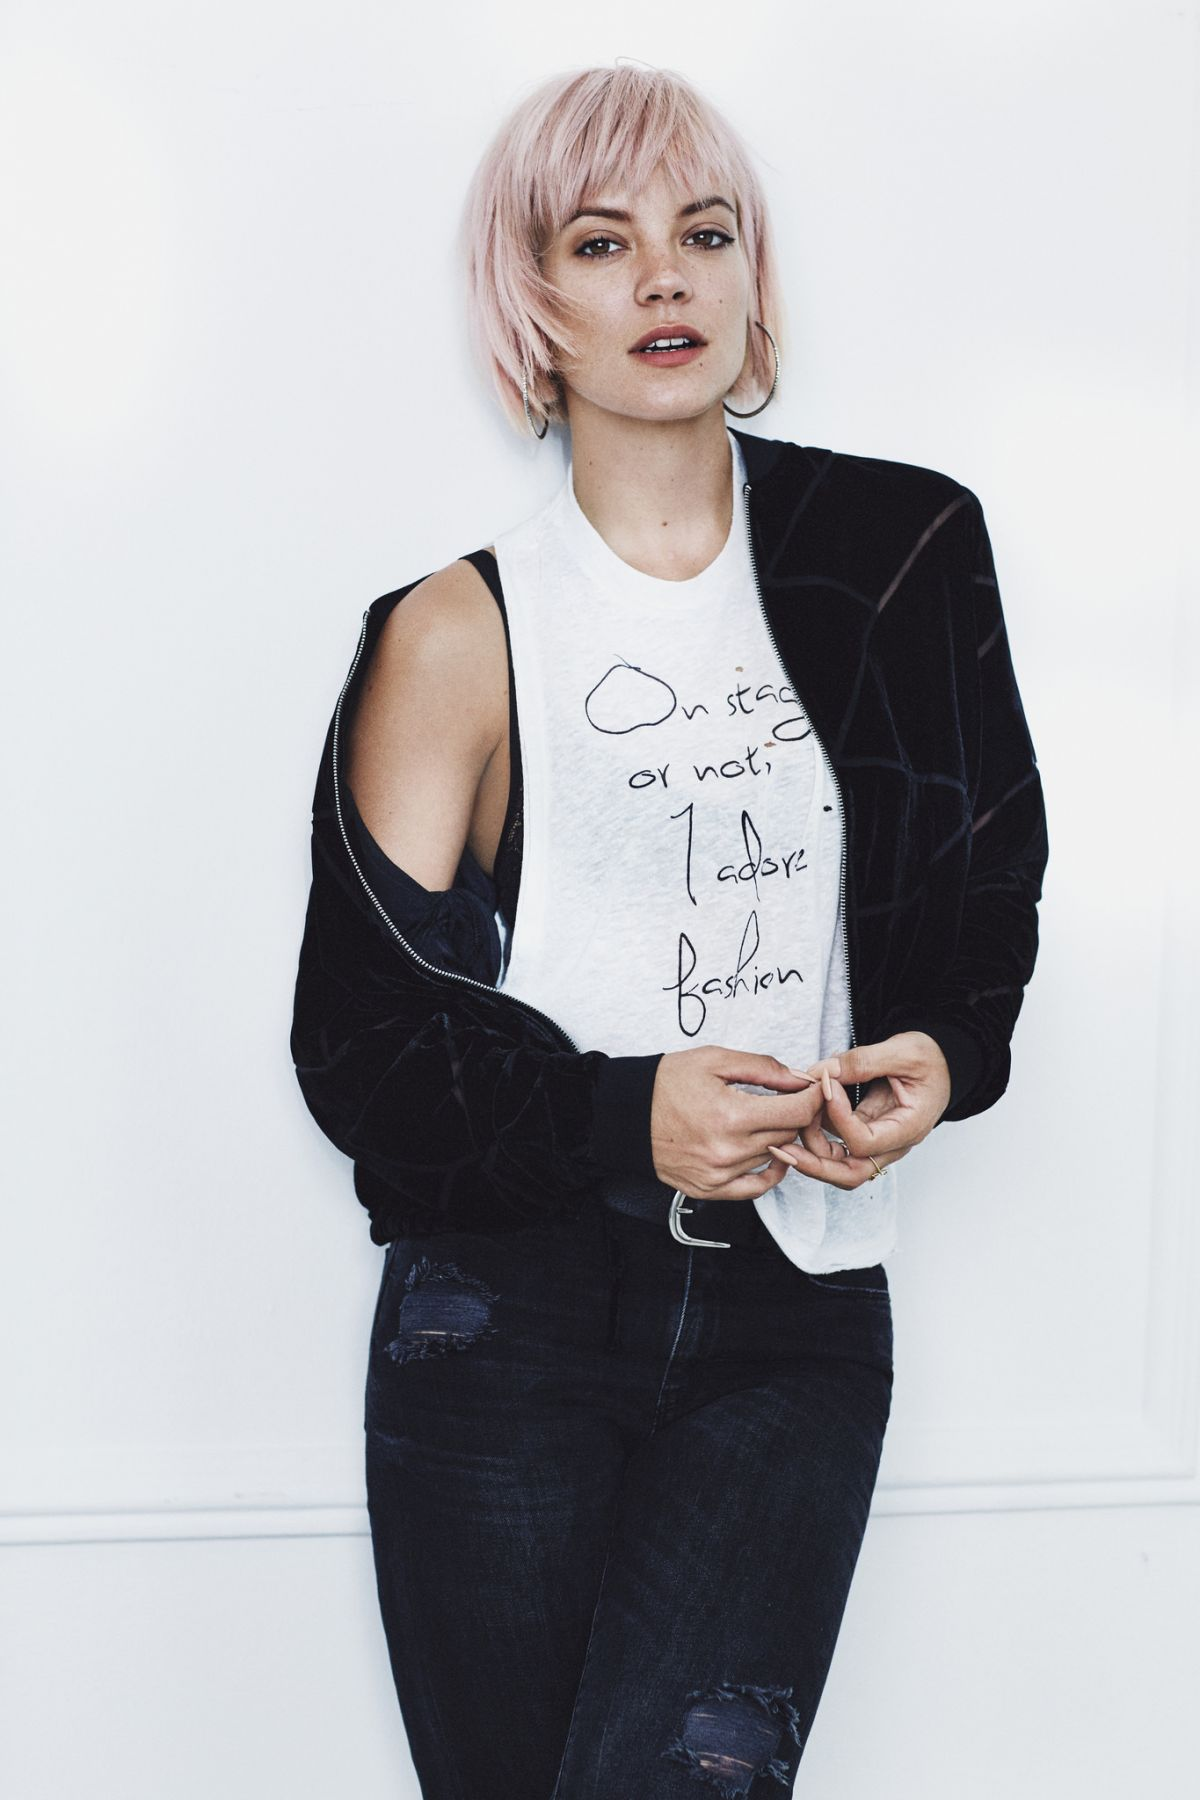 LILY ALLEN by Ryan Thwaites for Vero Moda Winter 2015 Collection ...